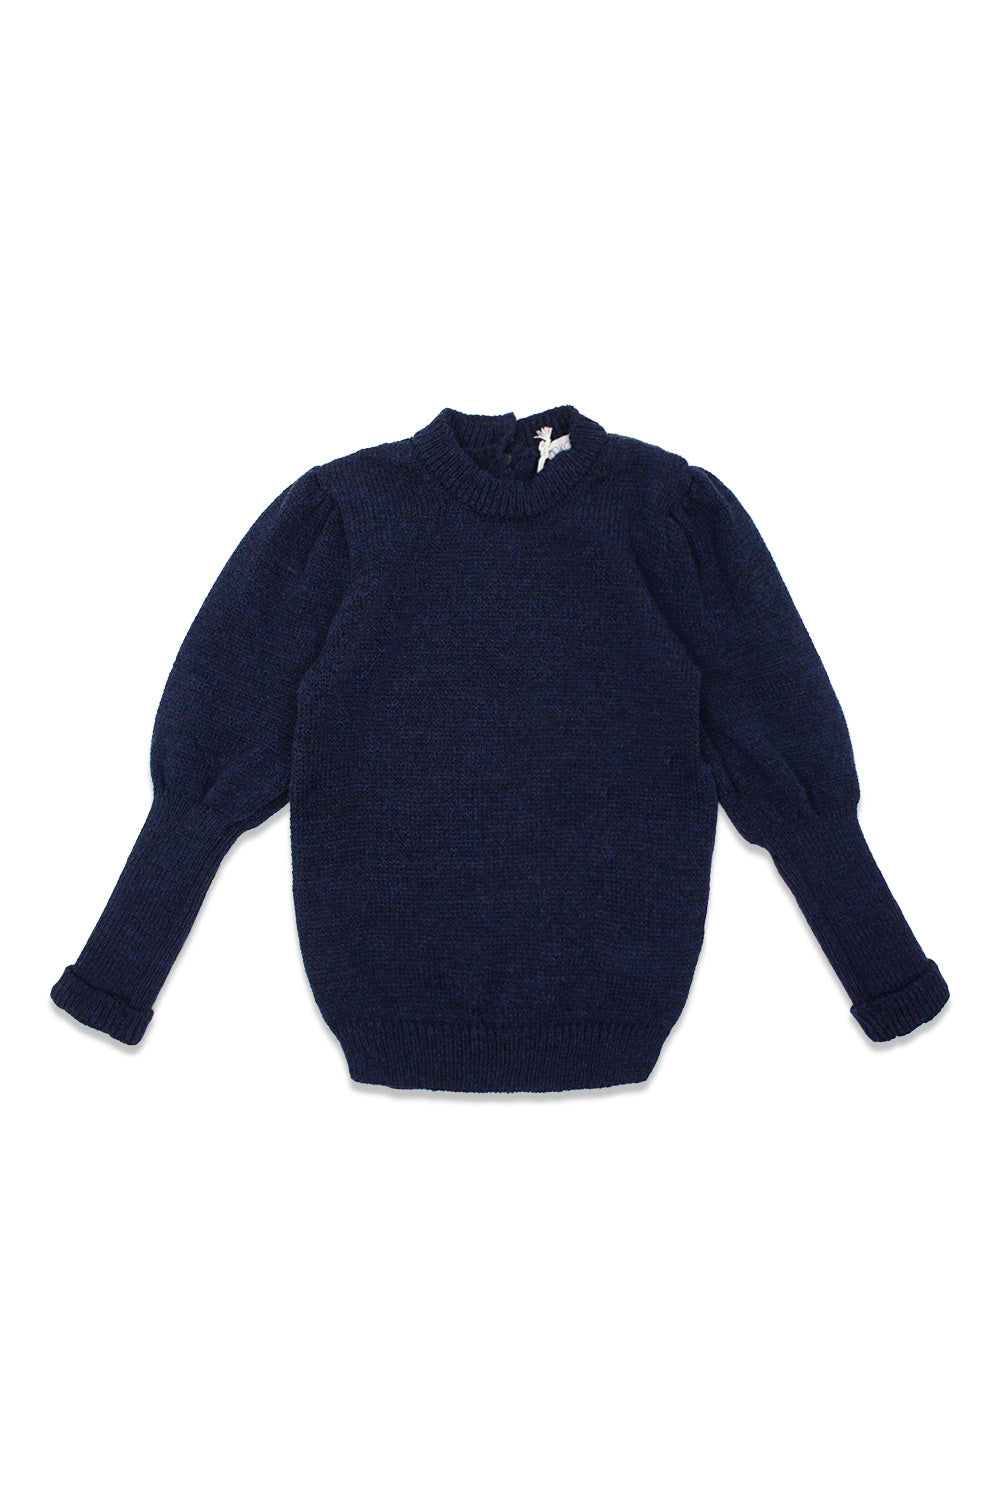 Kokori Navy Sweater